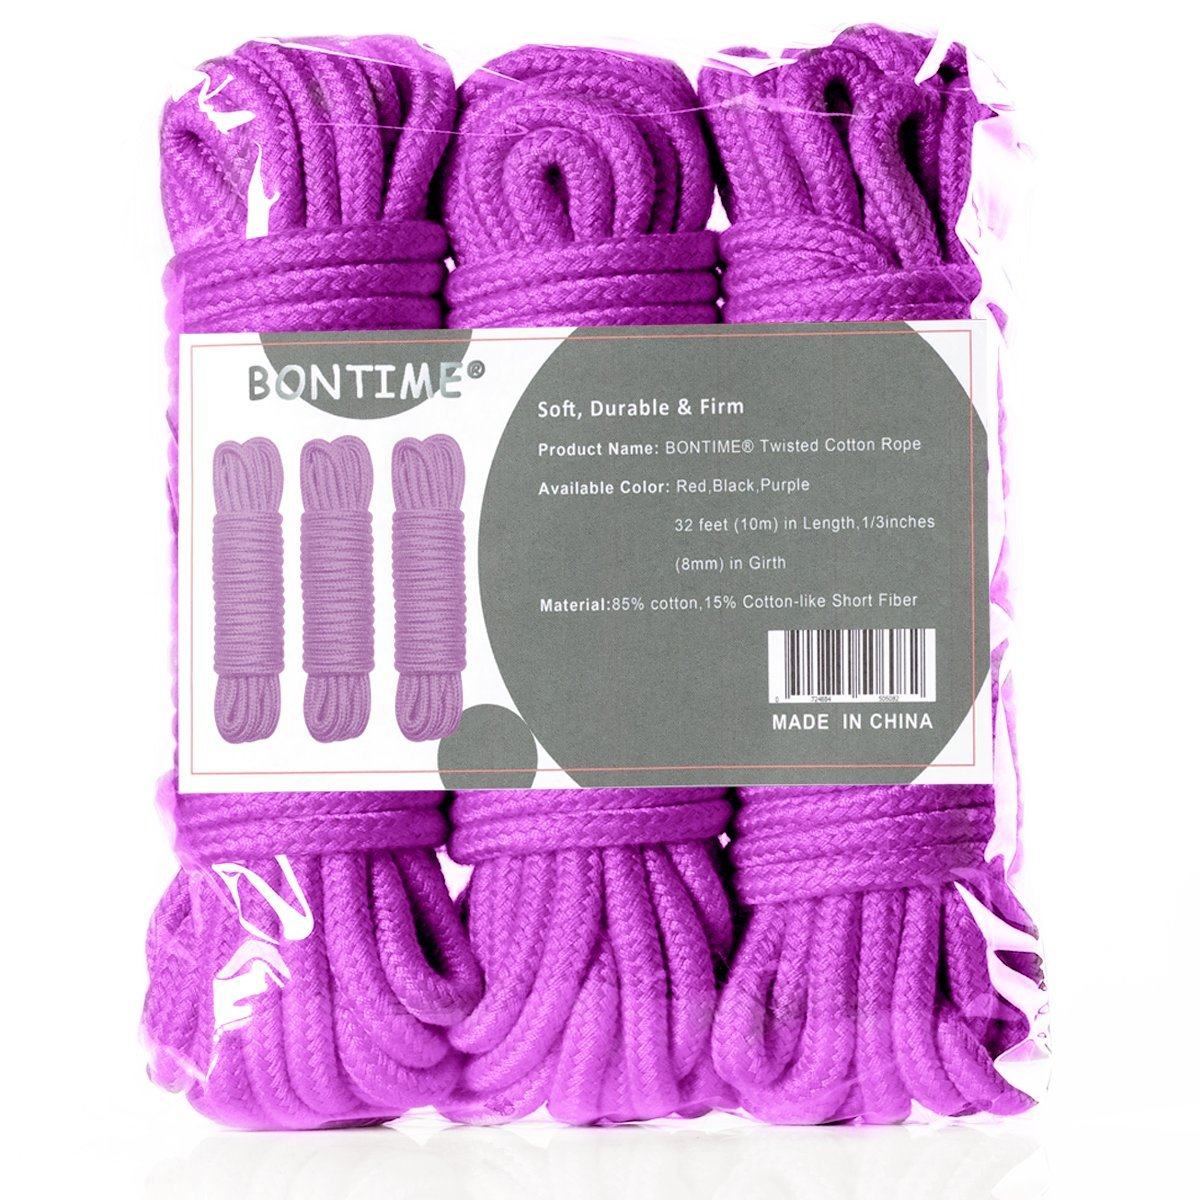 BONTIME All-Purpose Soft Cotton Rope - 32 Feet Length,1/3-Inch Diameter (Purple,Pack of 3) by BONTIME (Image #7)